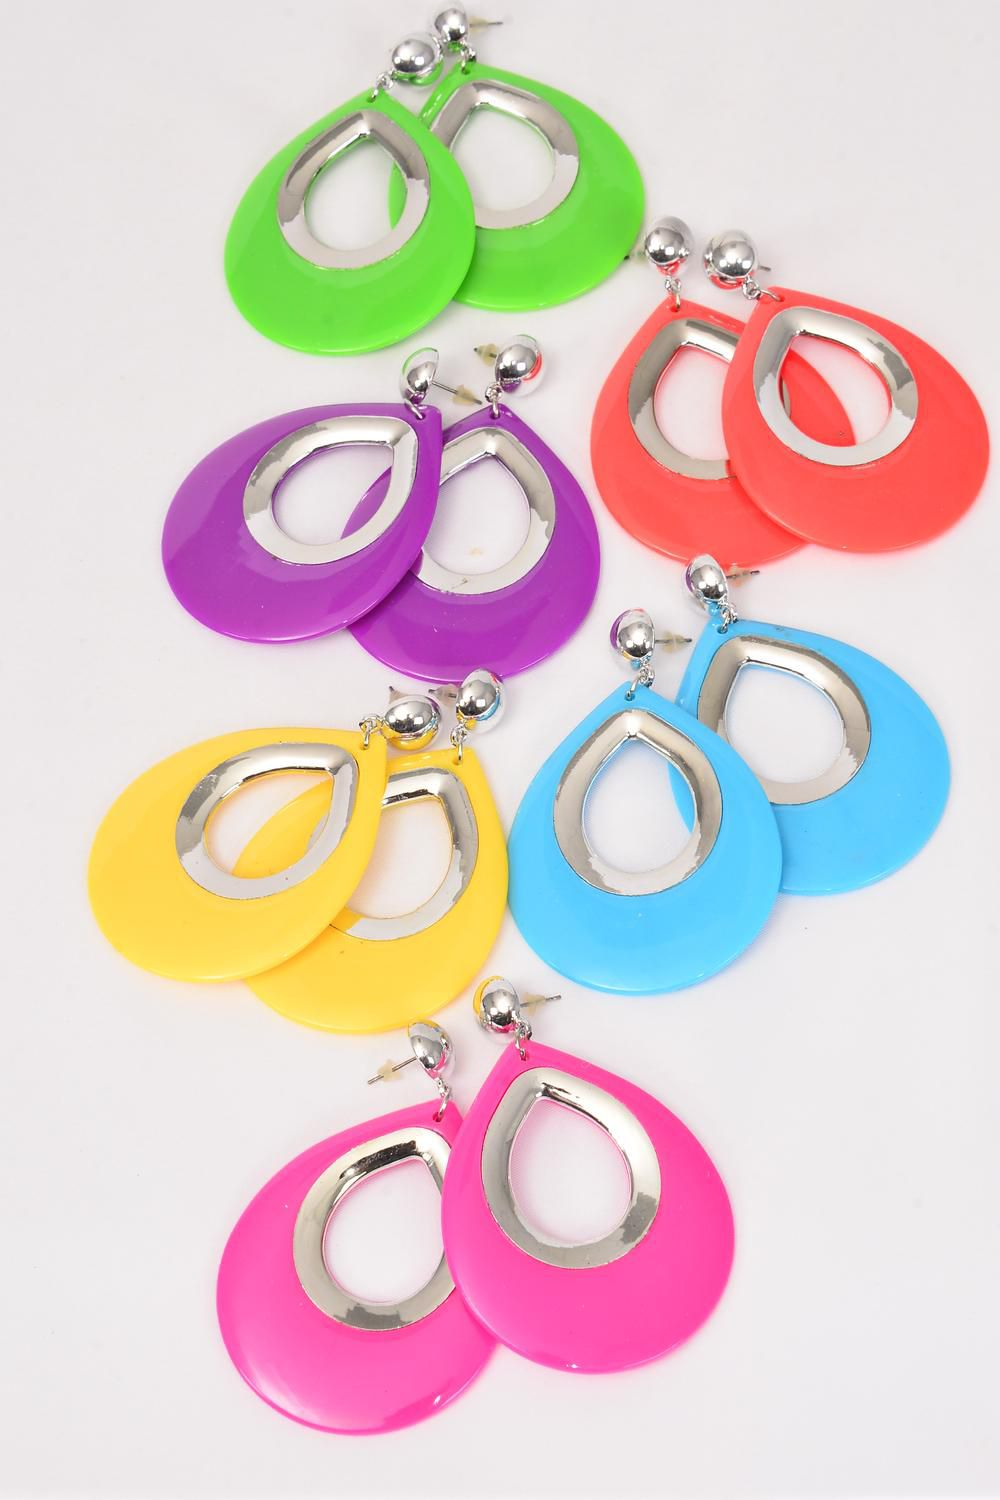 "Earrings Acrylic Teardrop Citrus/DZ **Post** Size-Teardrop 2.25""x 2"" Wide,2 of each Color Asst,Earring Card & Opp Bag & UPC Code"